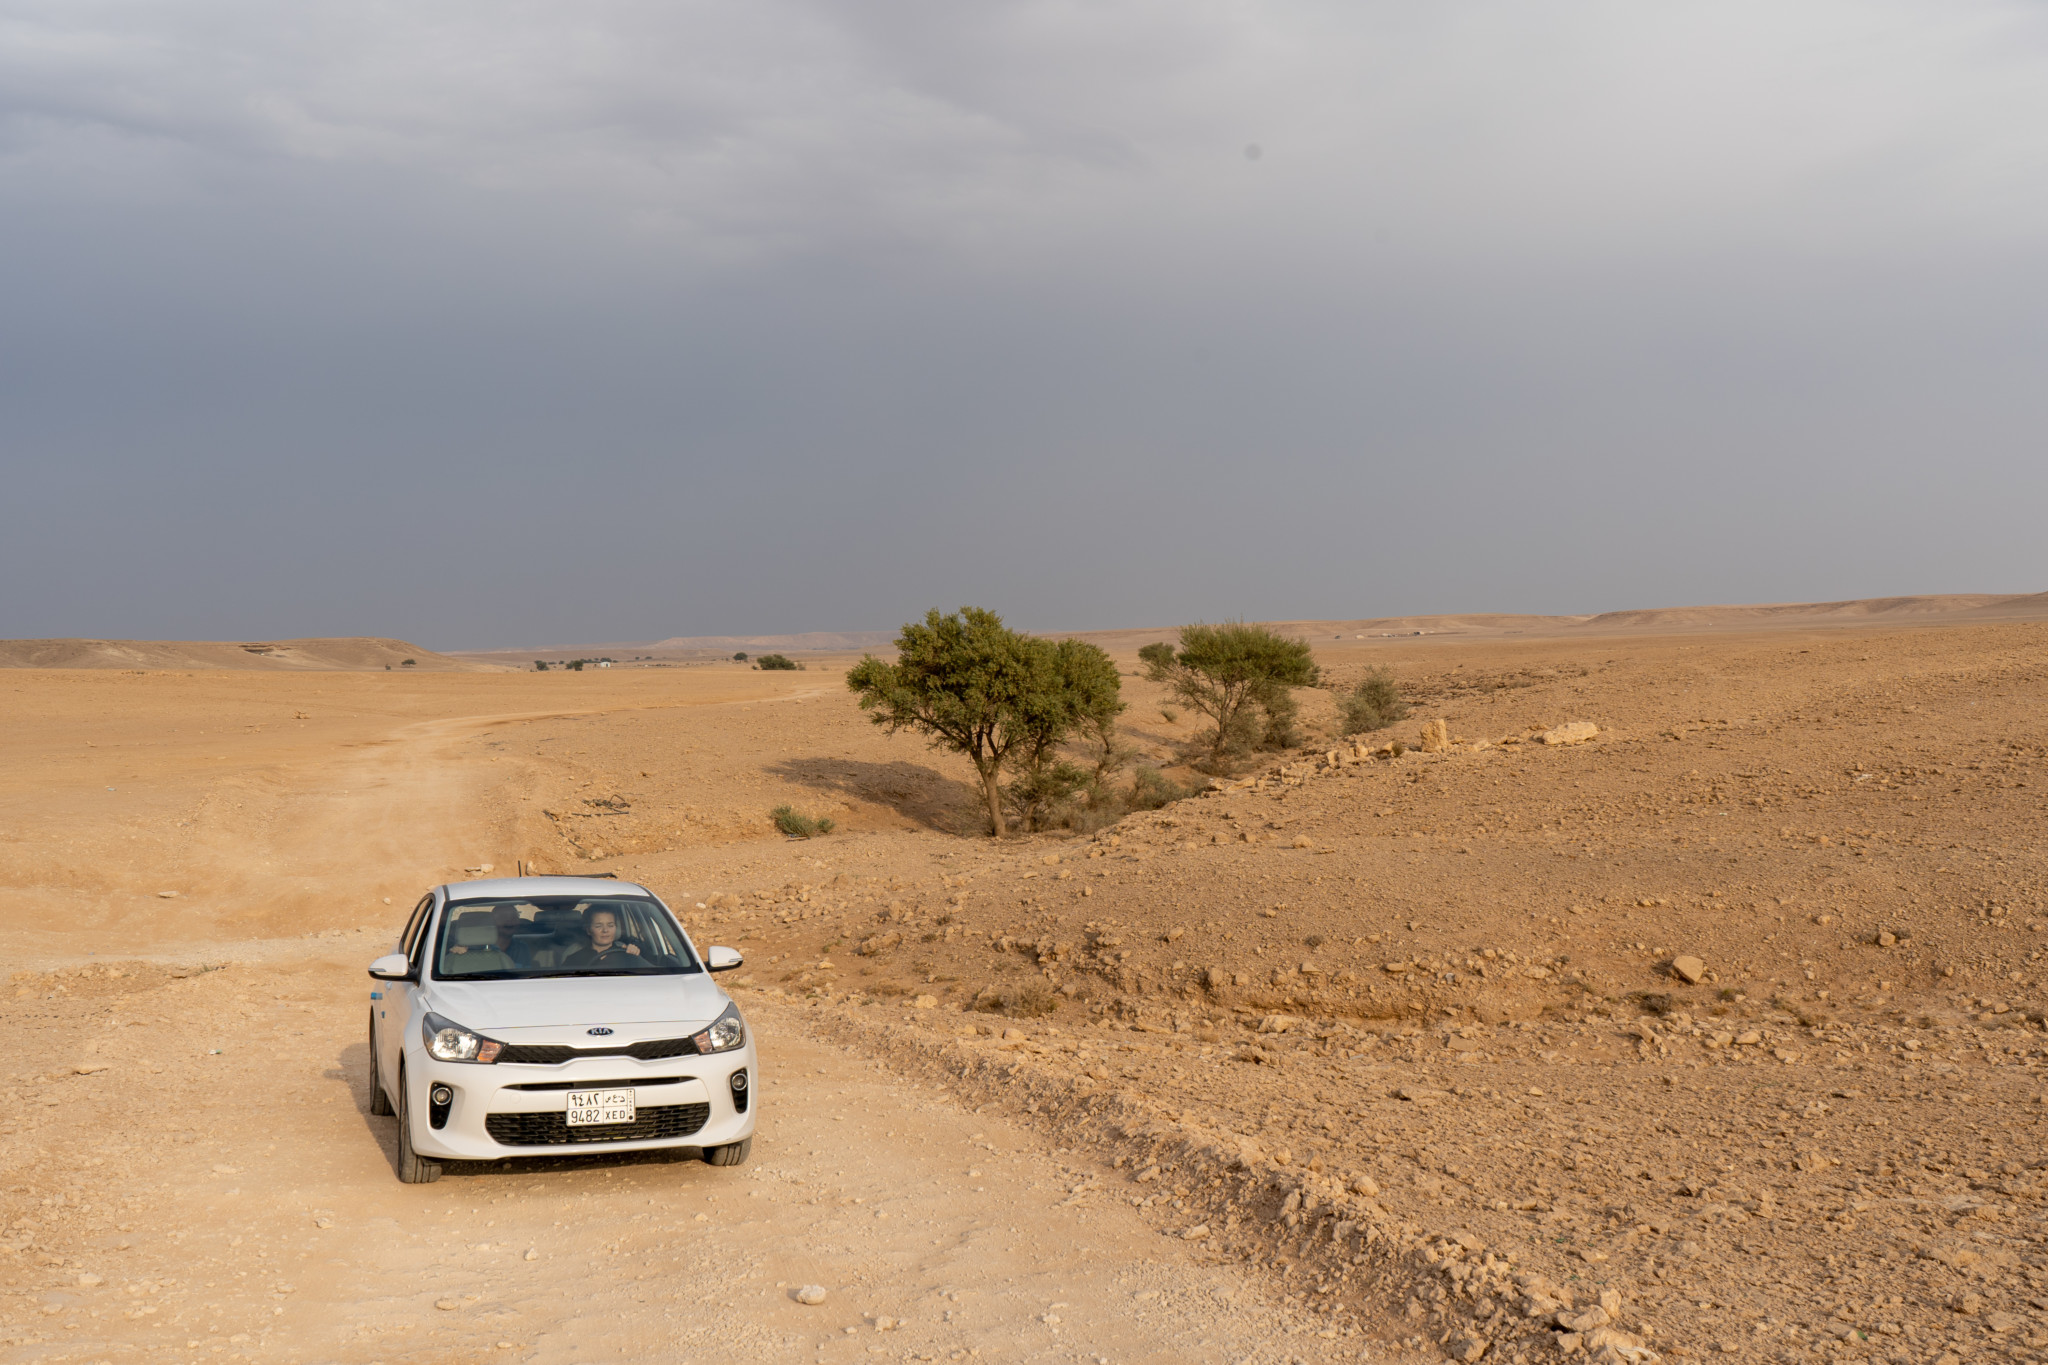 Mit dem Auto zum Edge of the World in Saudi-Arabien